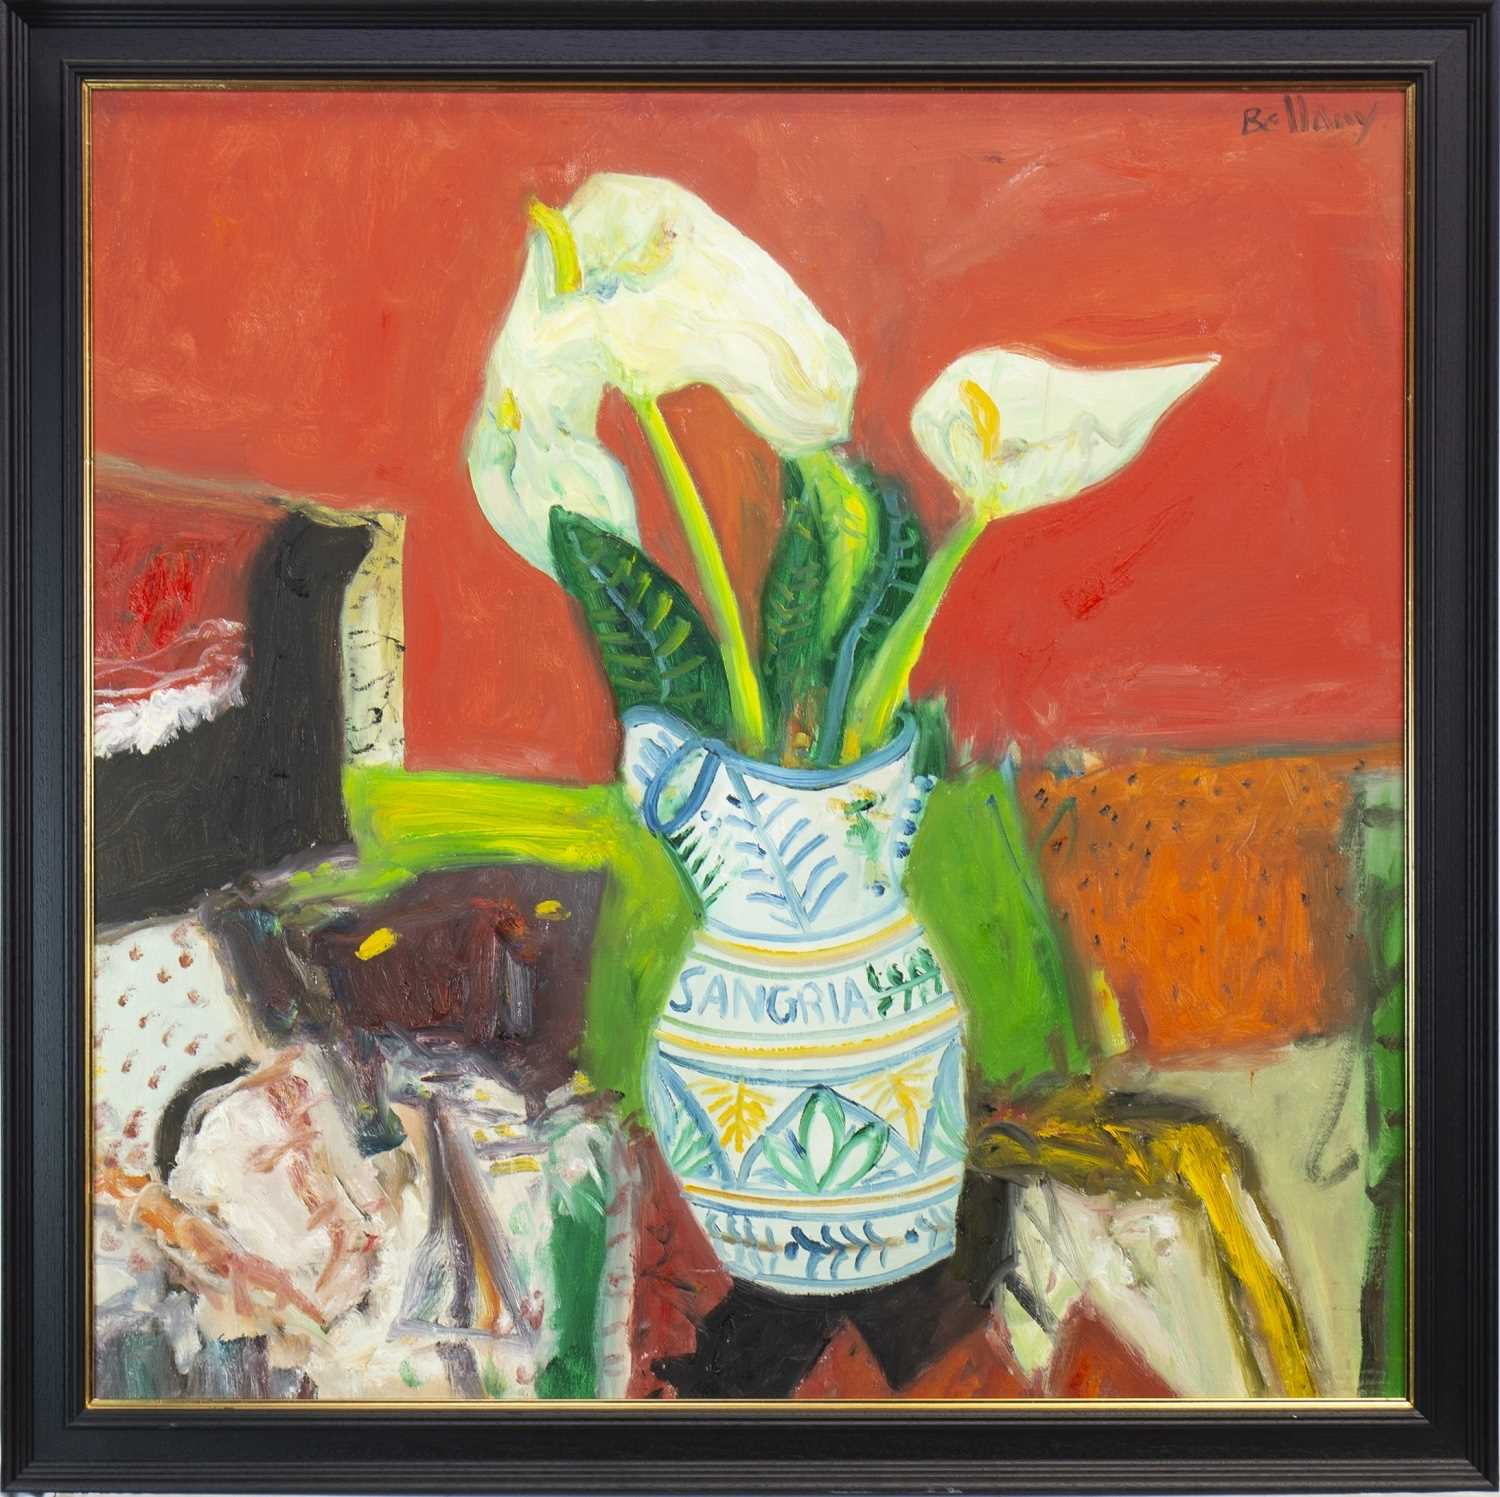 Lot 569-STILL LIFE WITH LILIES IN A SANGRIA JUG, AN OIL BY JOHN BELLANY